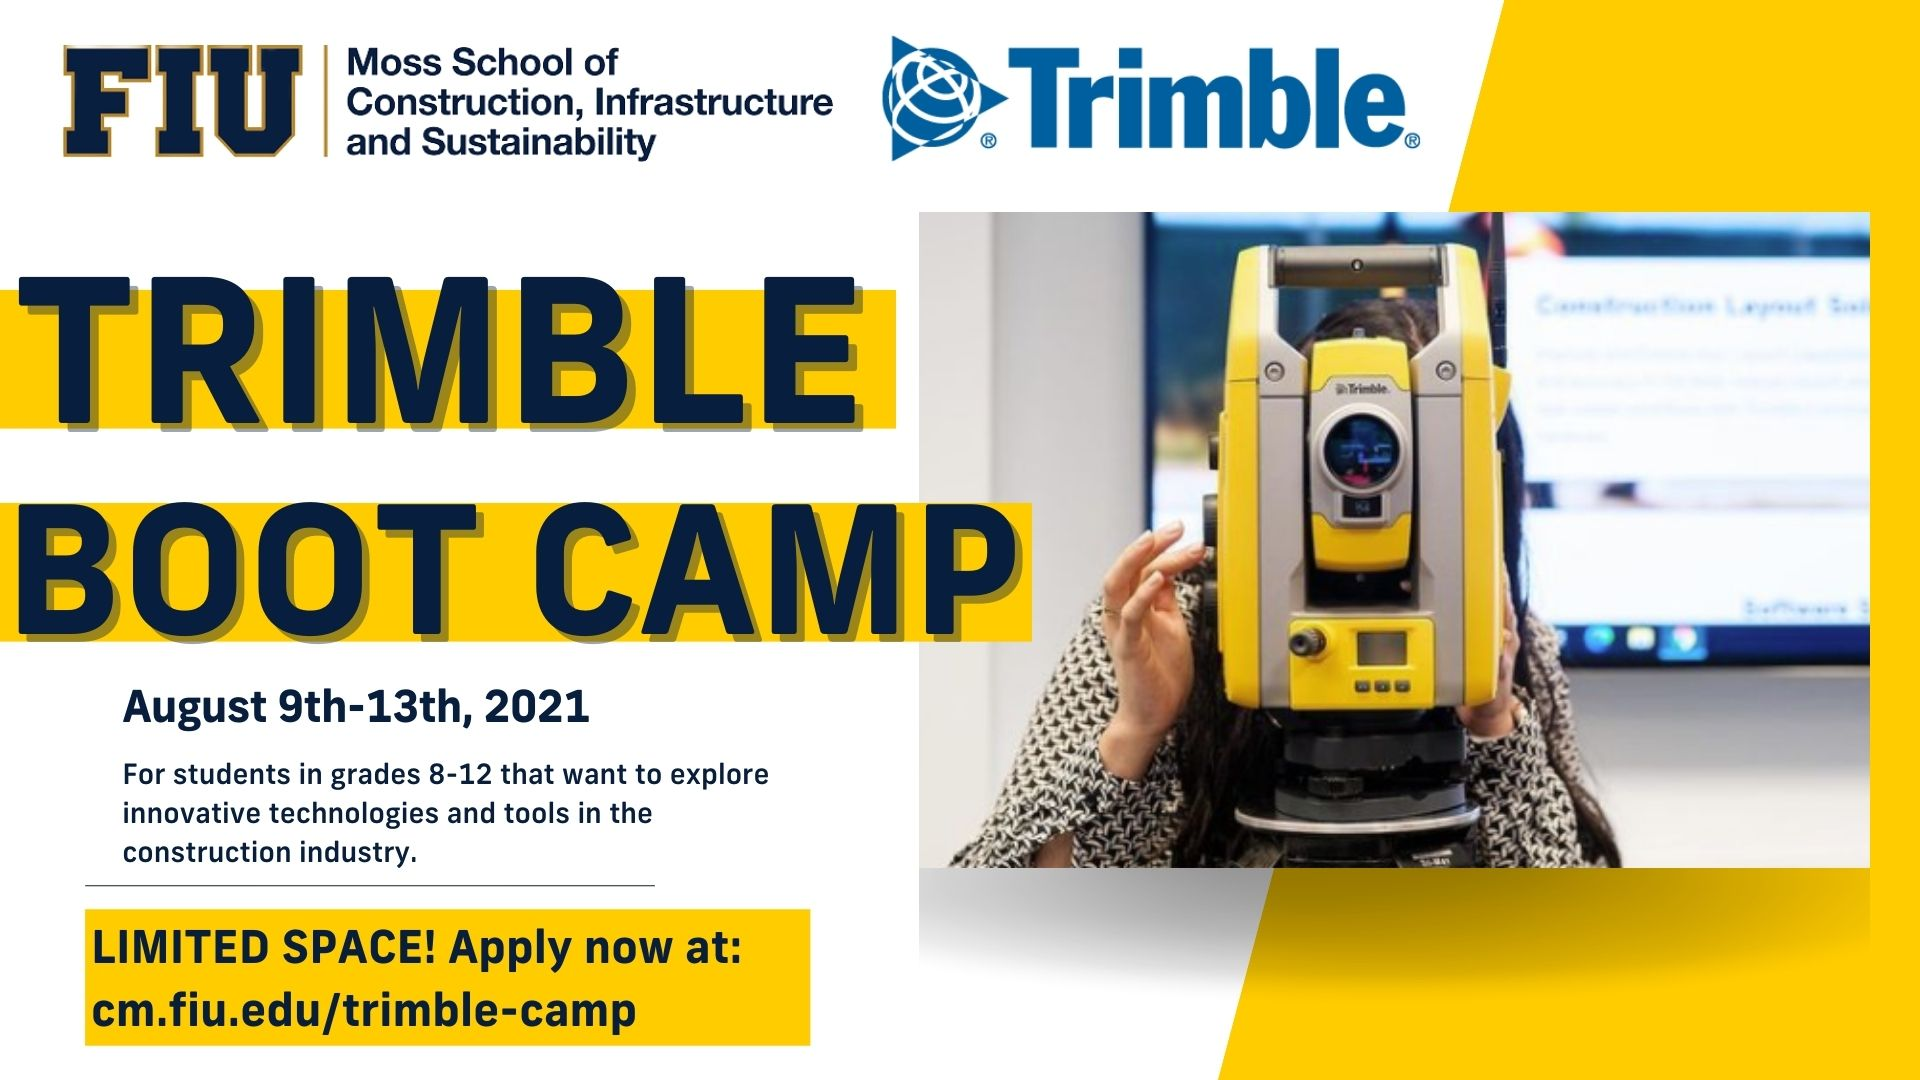 Trimble Boot Camp save the date August 9th-13th 2021. Student shown using Trimble technology